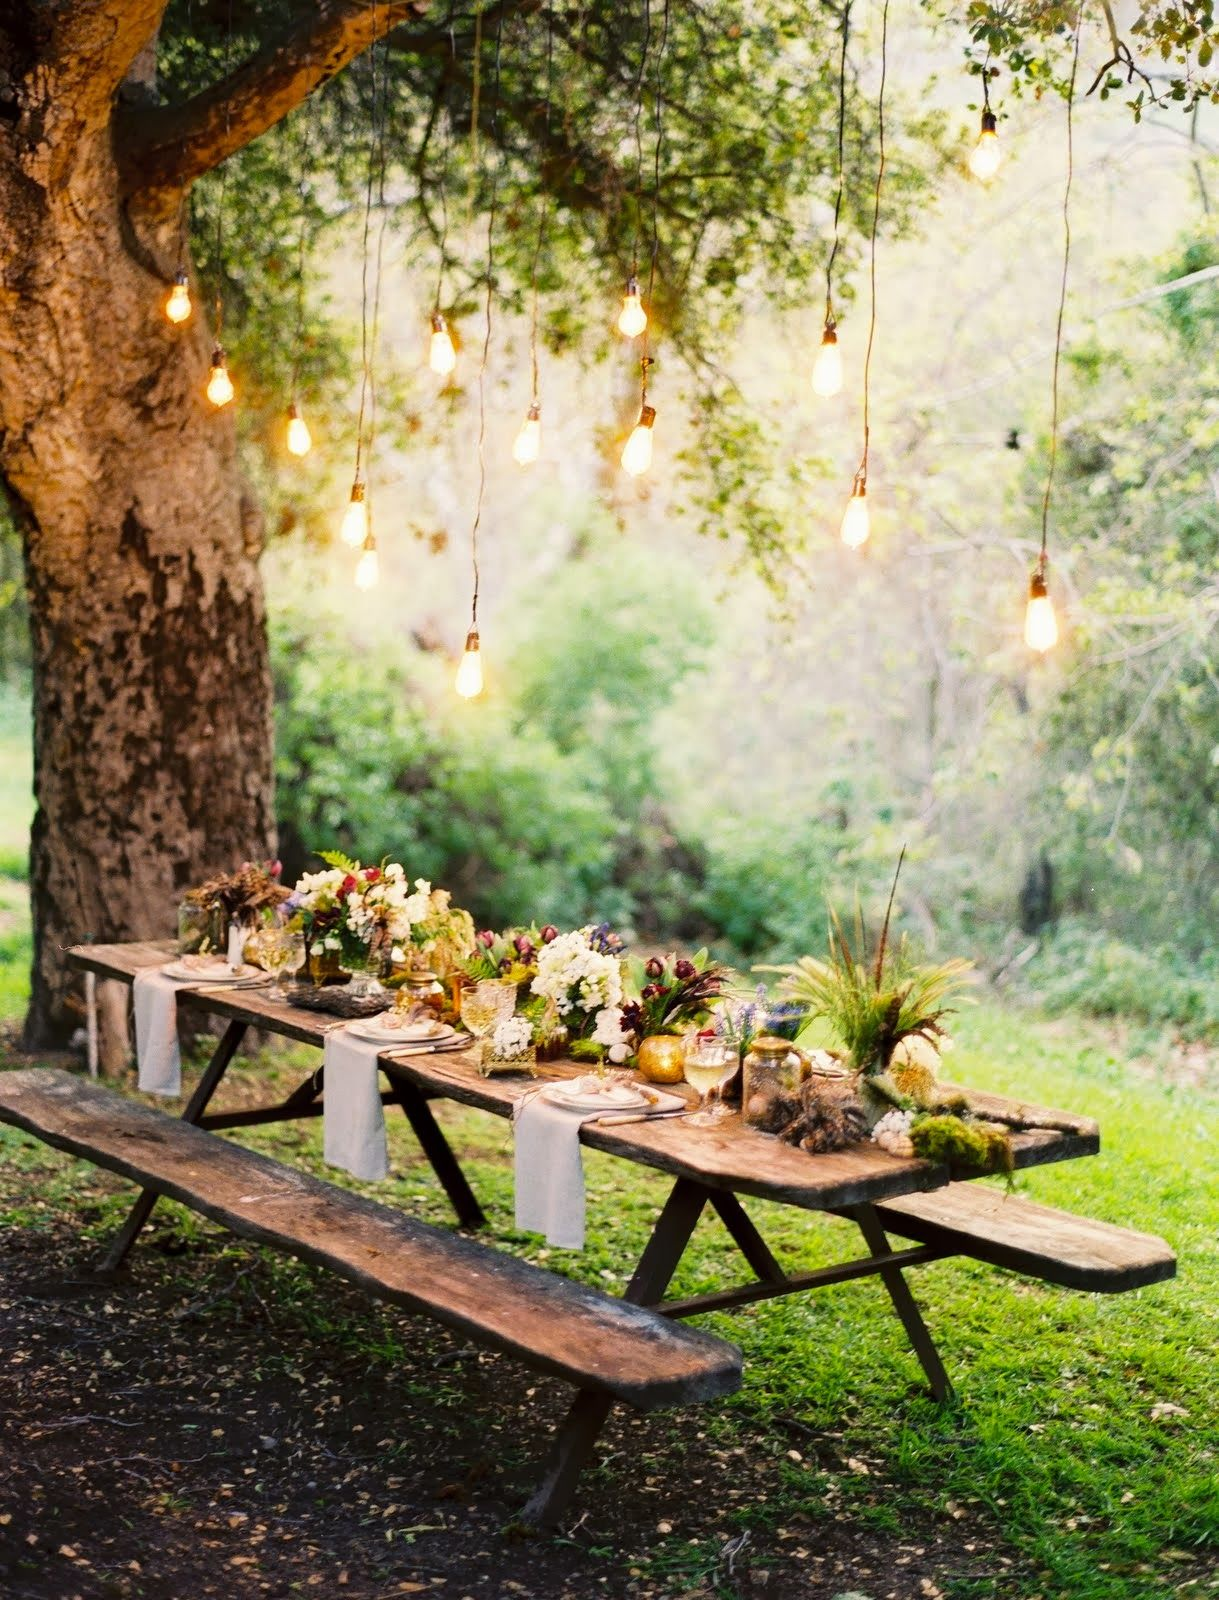 Garden Dinner Table Setting With Exposed Bulb Lighting Quite The Outdoor To Have A Family This Seems Look Like Fairly Cheap